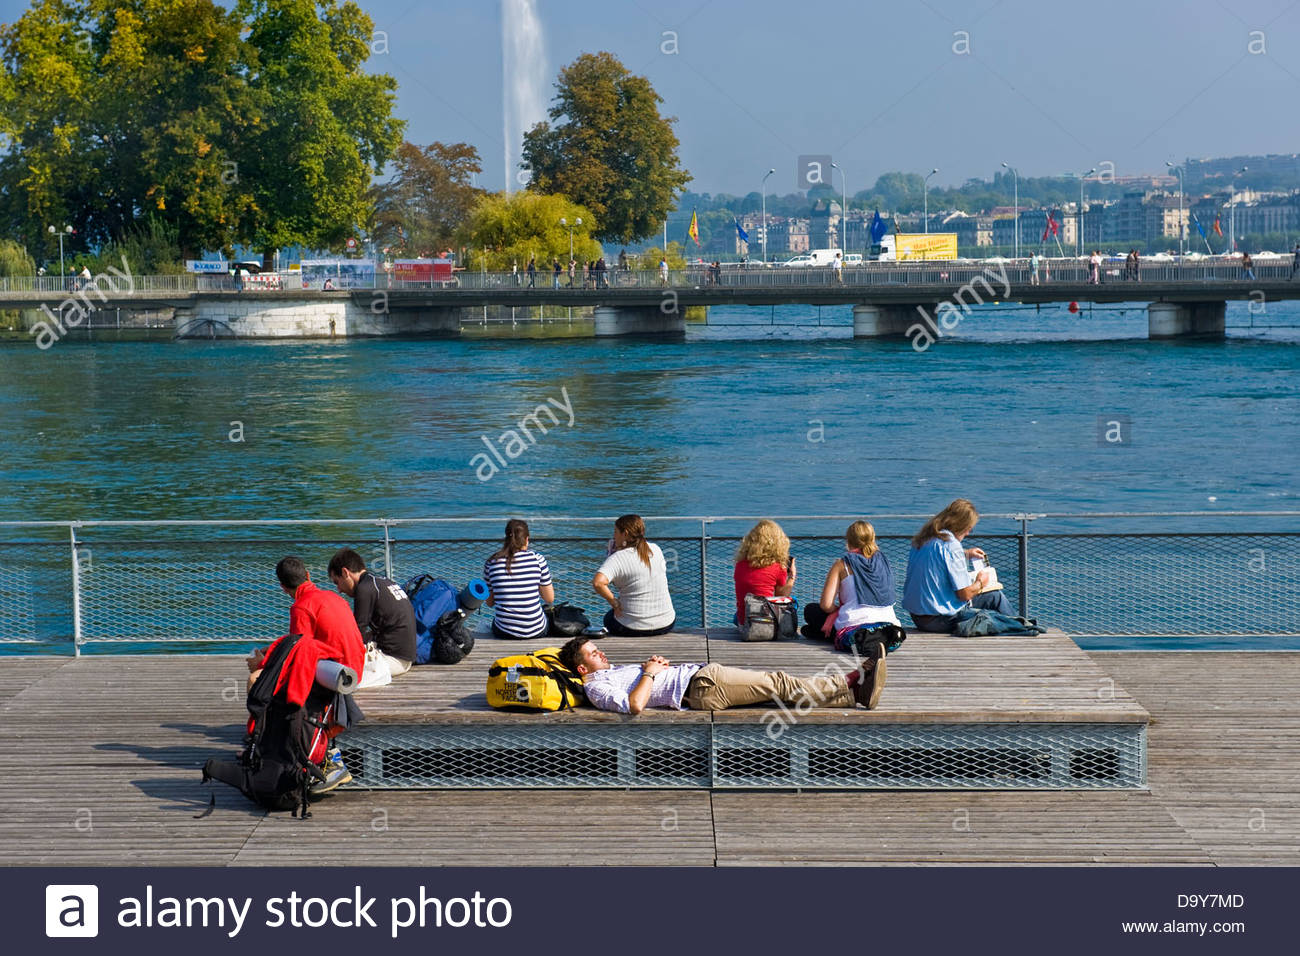 Lake Leman,Geneva,Switzerland - Stock Image